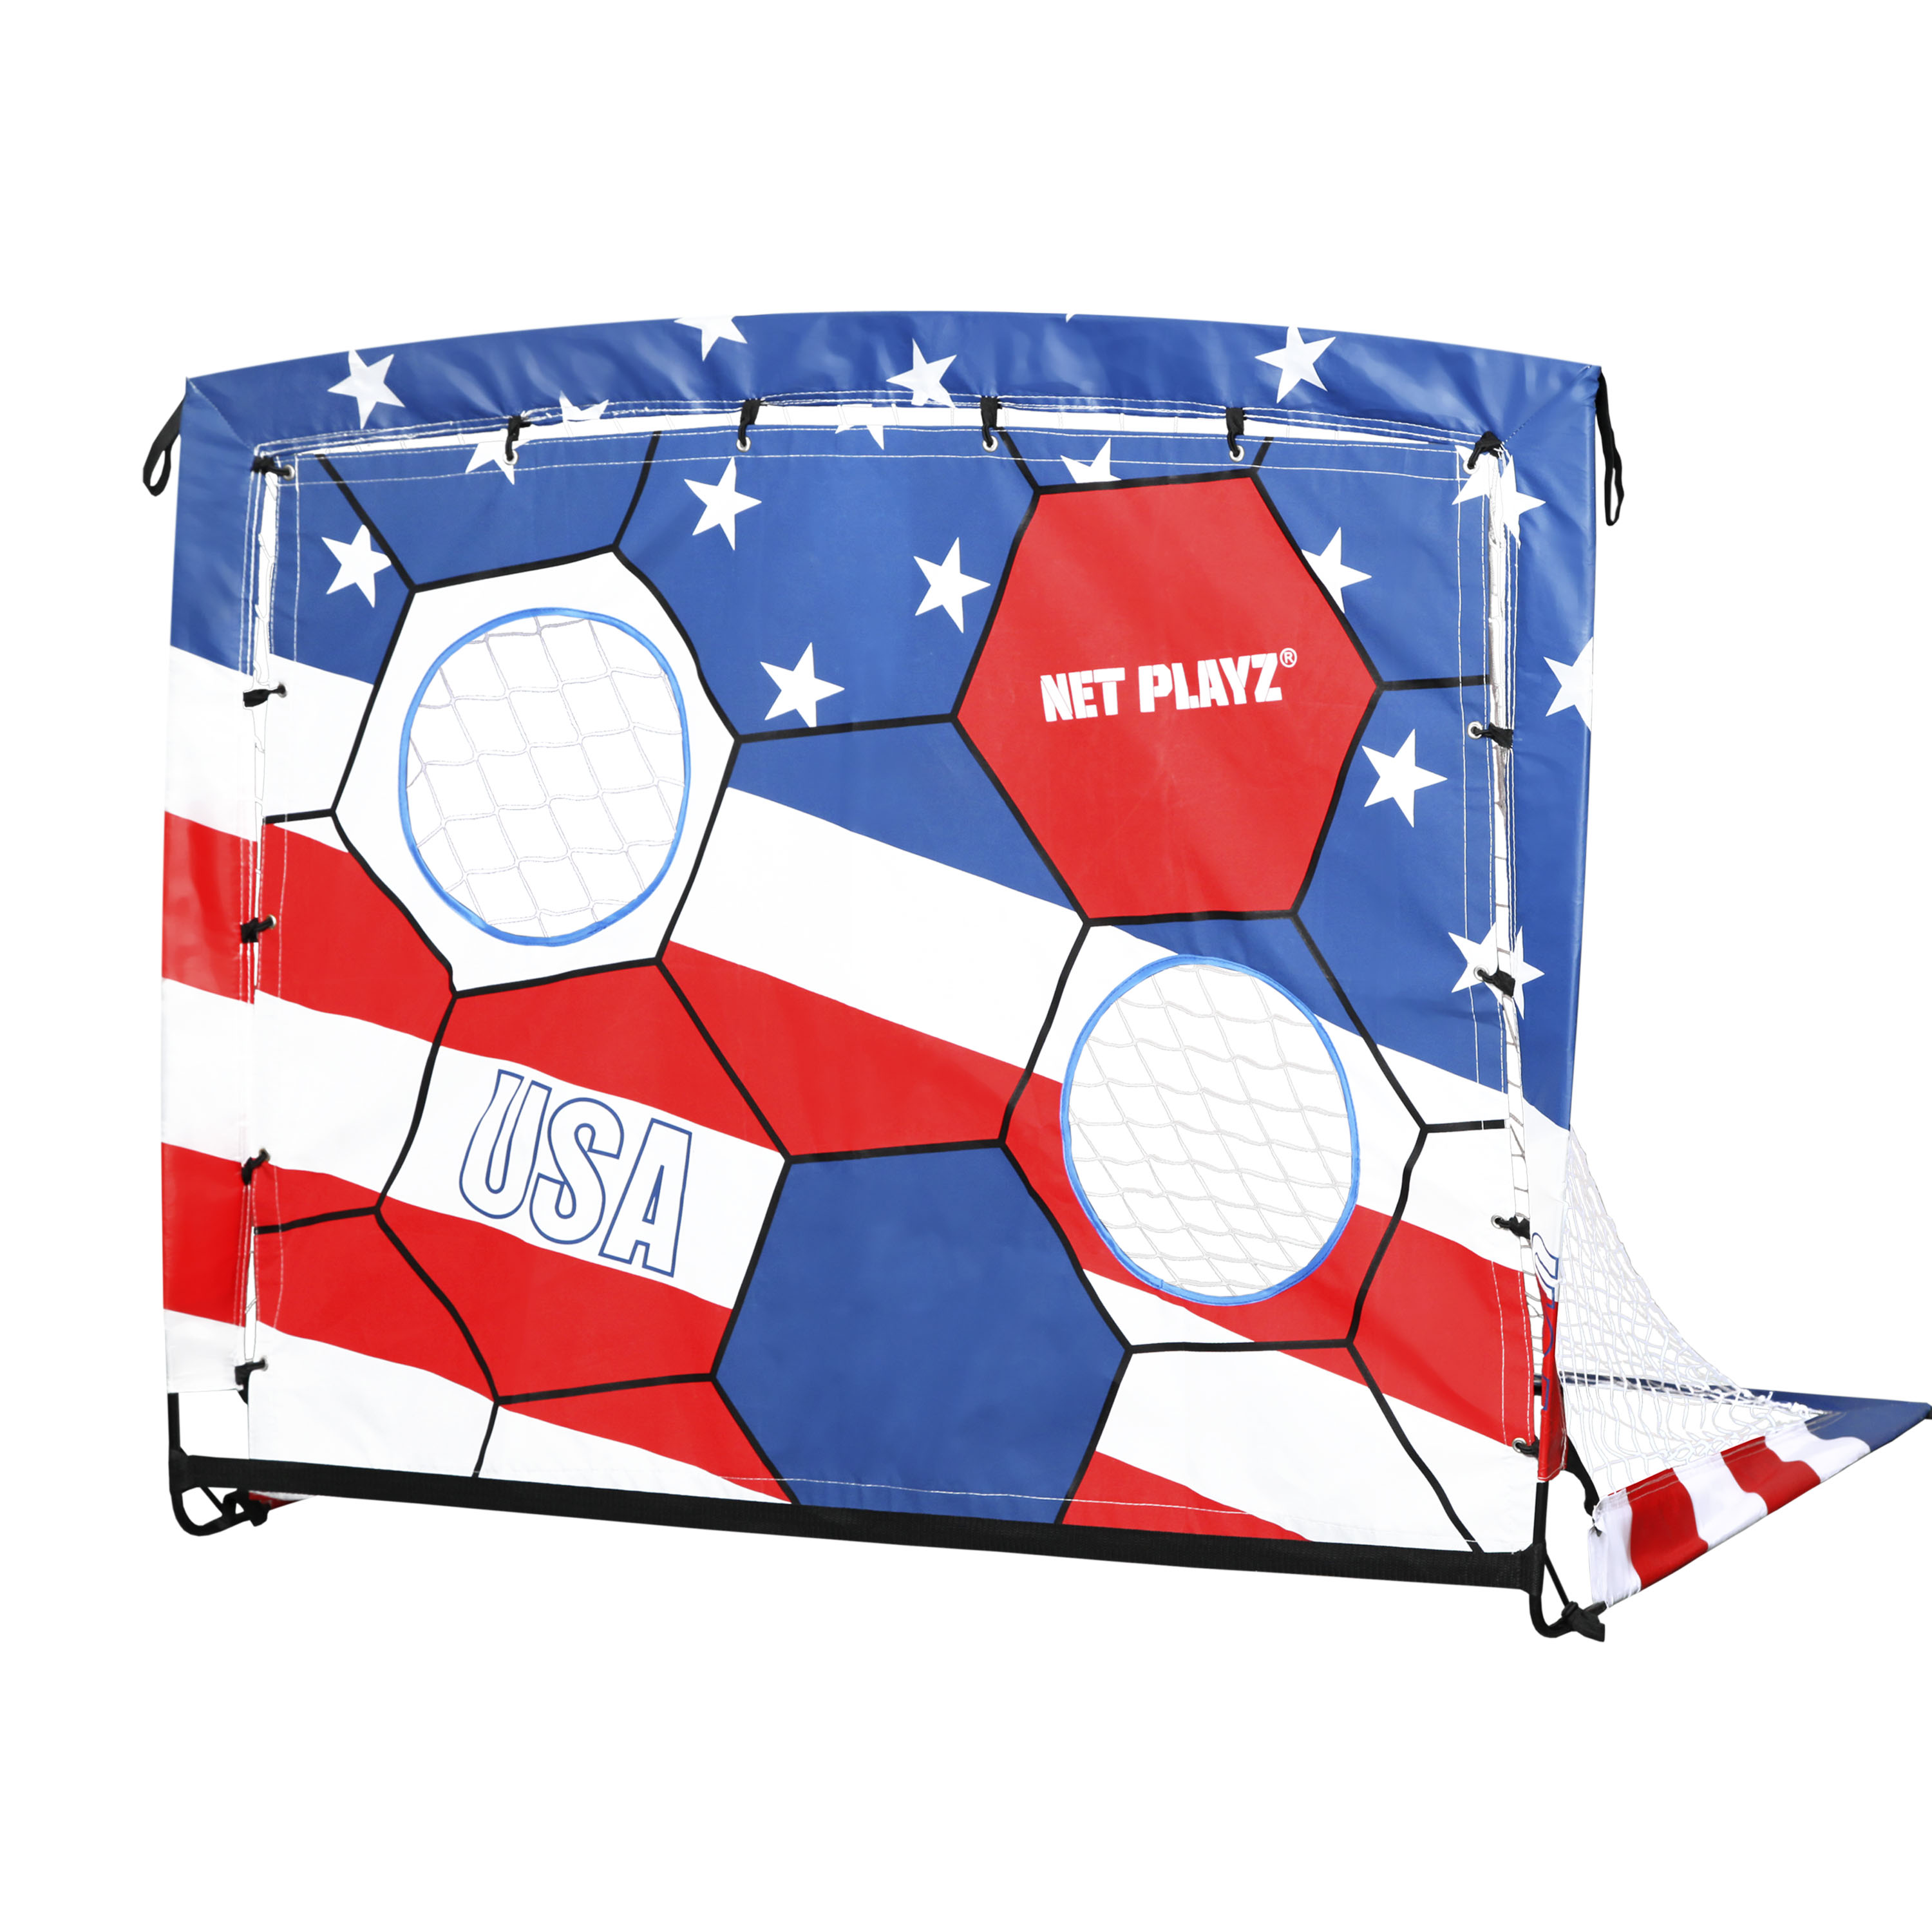 Net Playz 4ftx3ft 2 In 1 Portable Easy Fold-Up Training Soccer Goal with US Flag Target Panel/Carry Bag